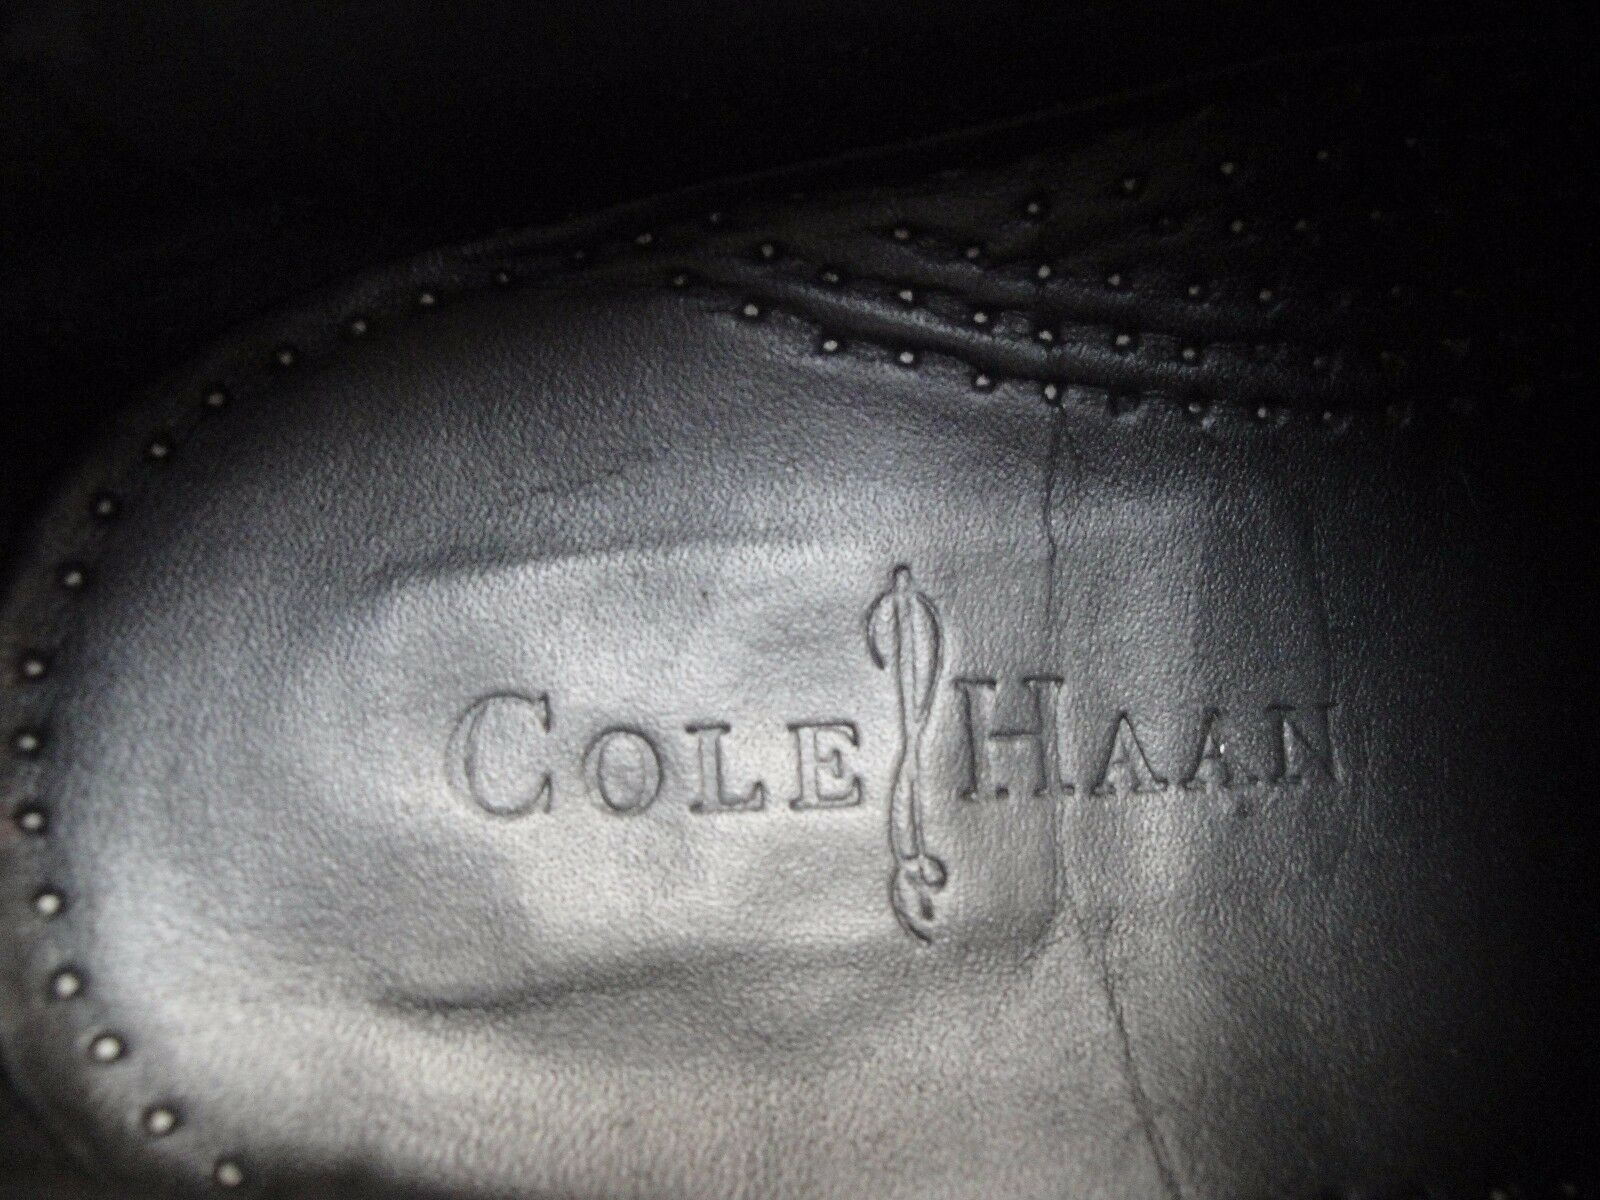 Cole Haan  Air Williams Cap Toe Oxfords US Schuhes for Men sz US Oxfords 10.5 Retail 225 eacfa5